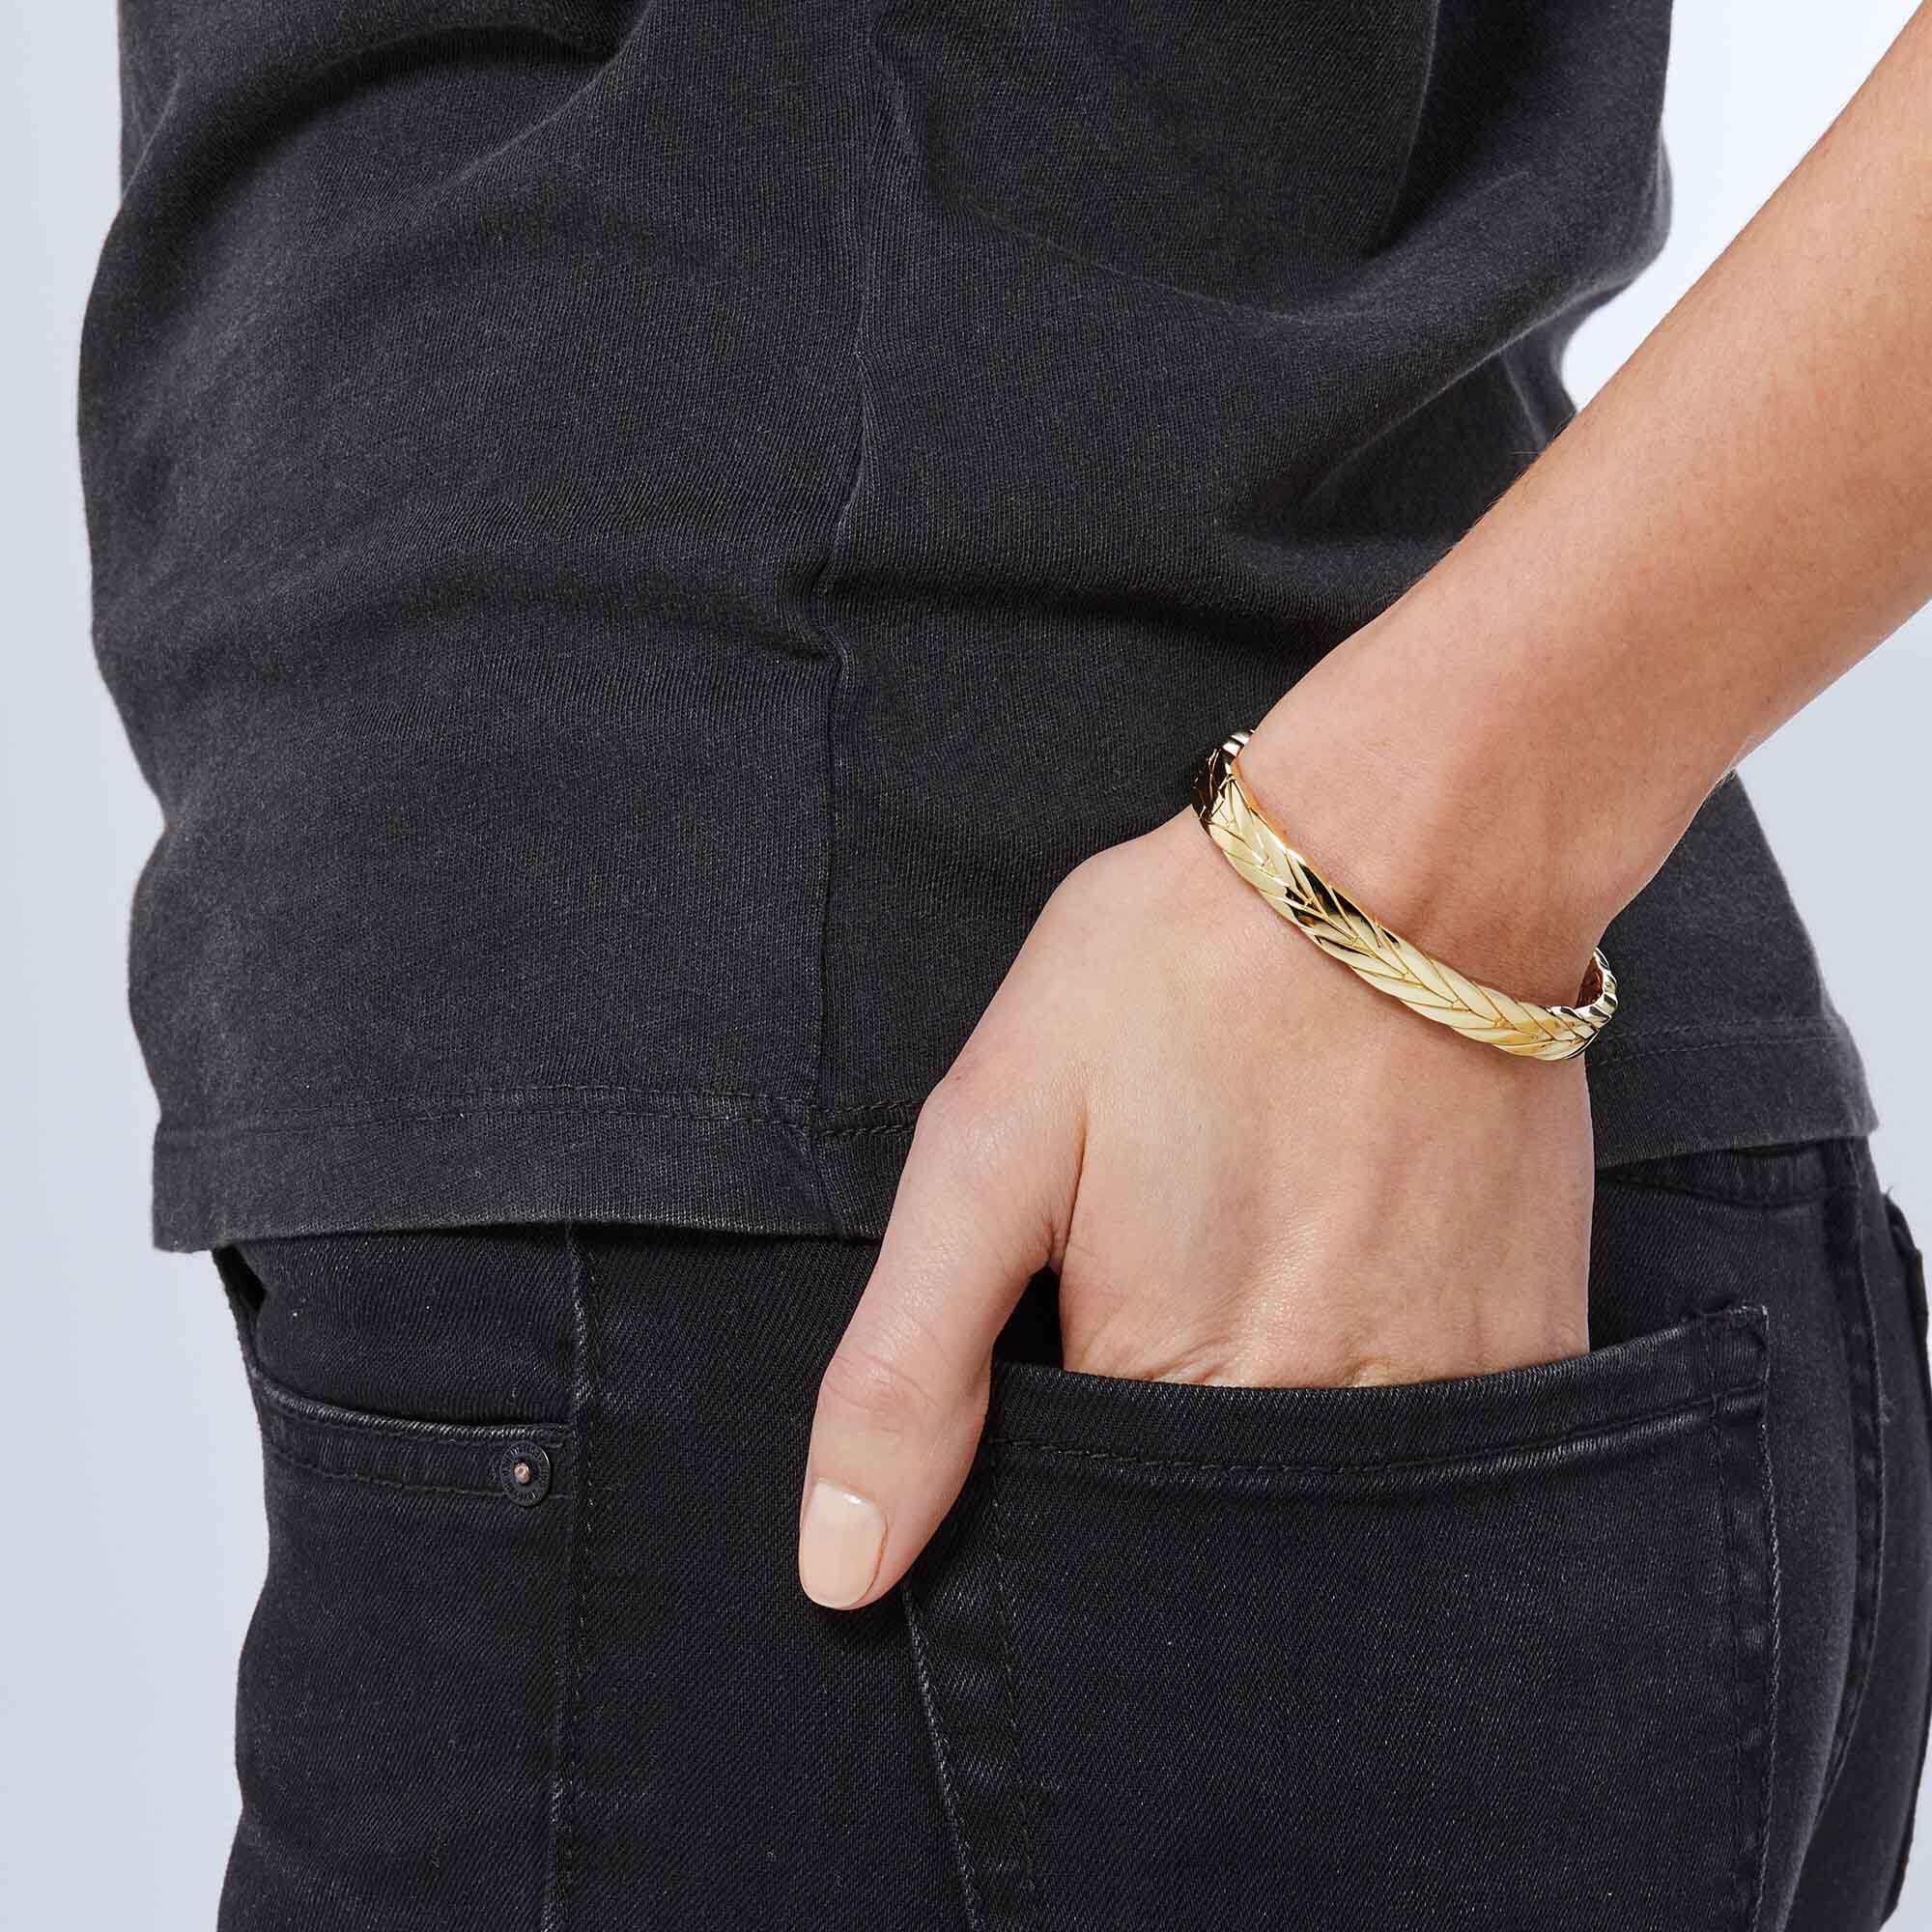 8mm Jeans Modern Chain 8mm Hinged Bangle In 18k Gold